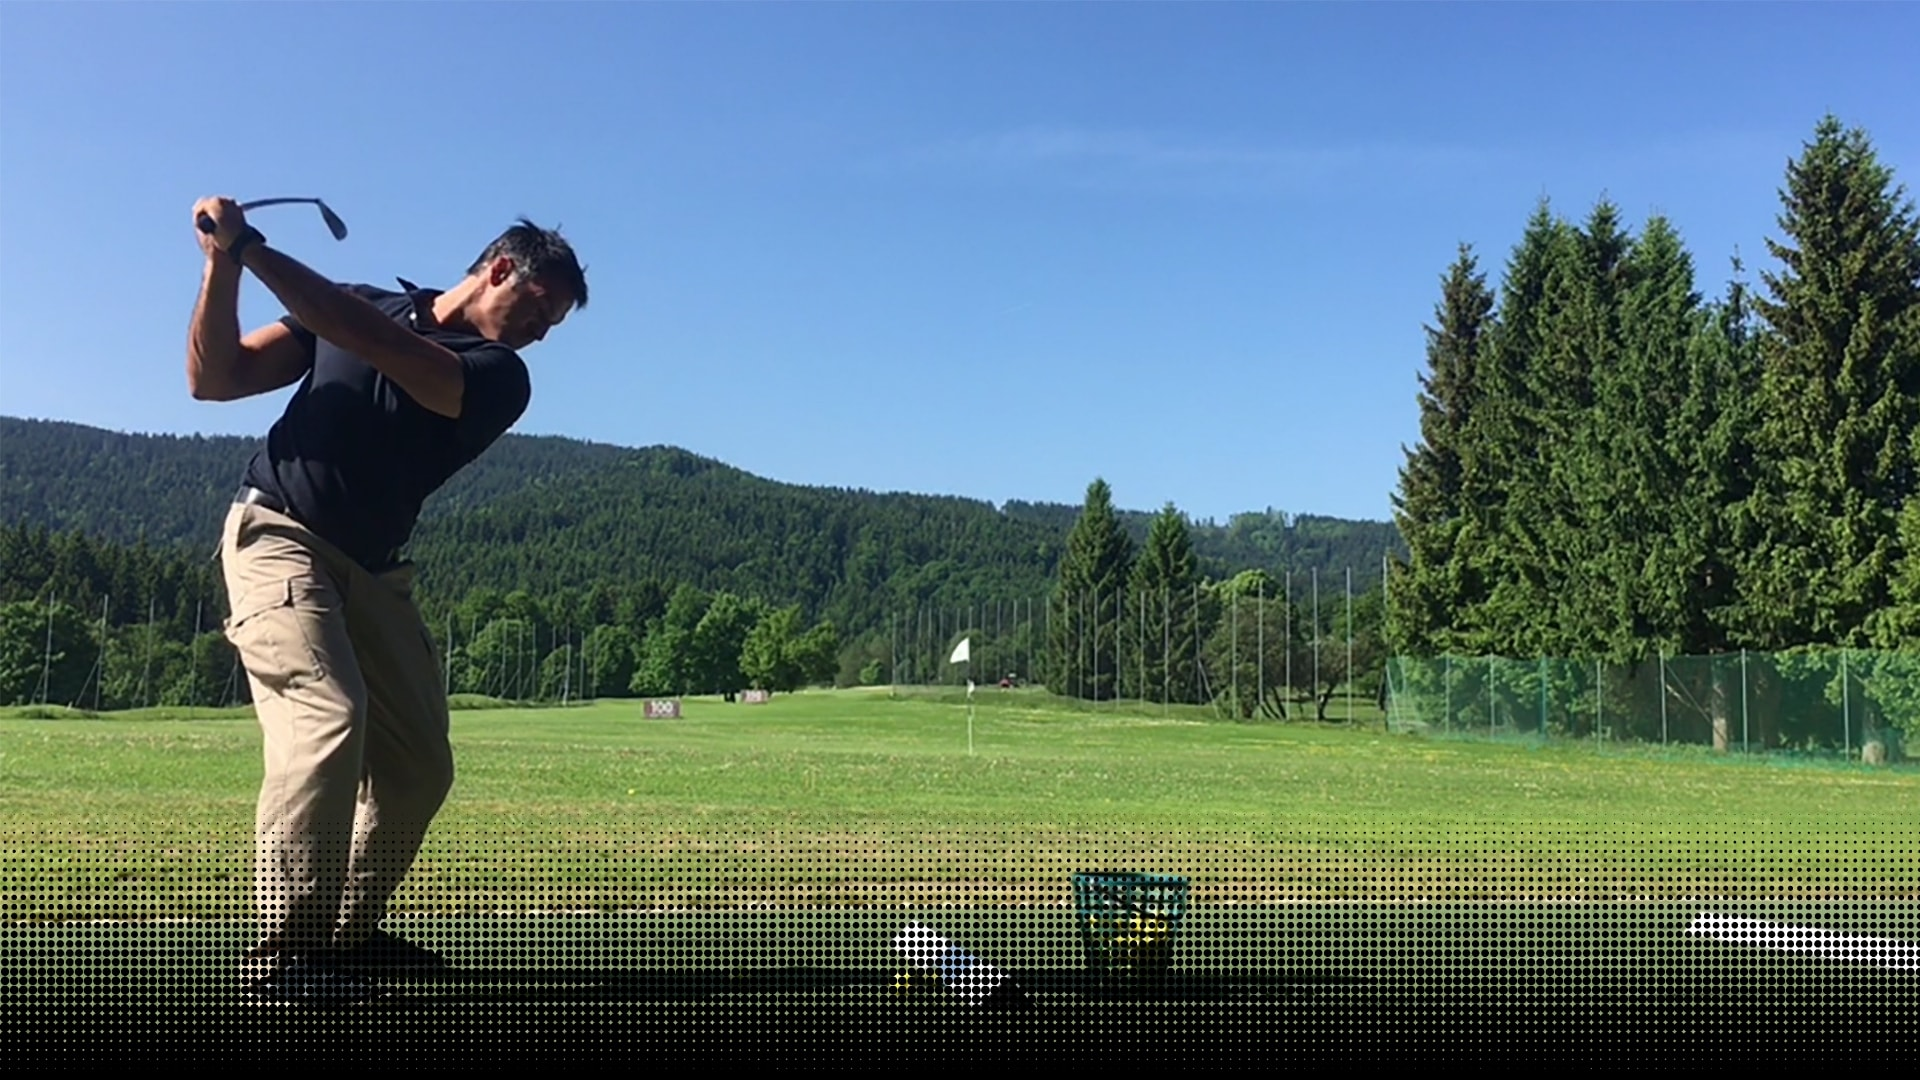 Specific training for golf